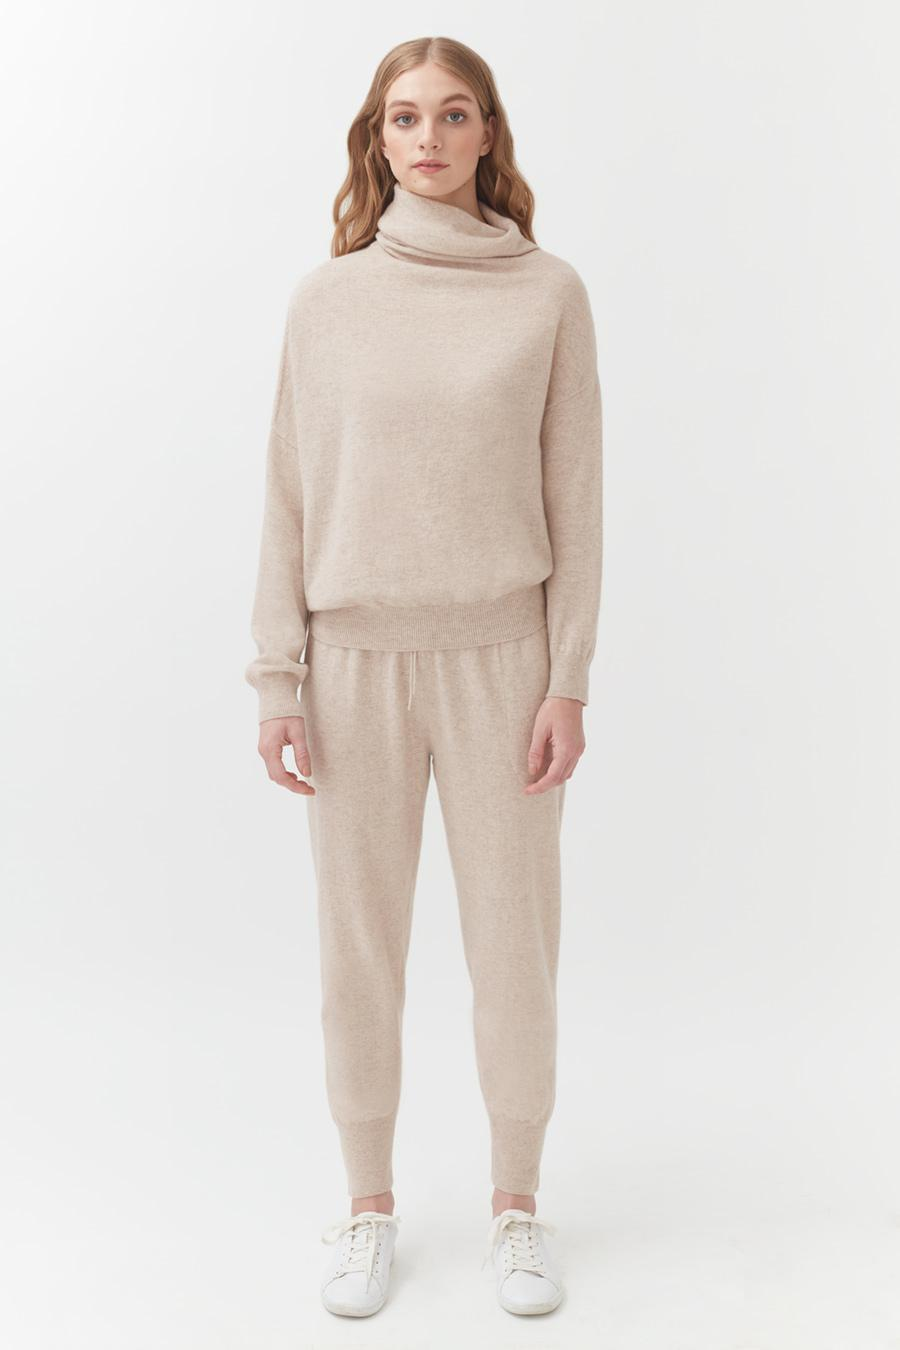 Women's Tapered Pant in Beige | Size: Large | Cashmere by Cuyana 1